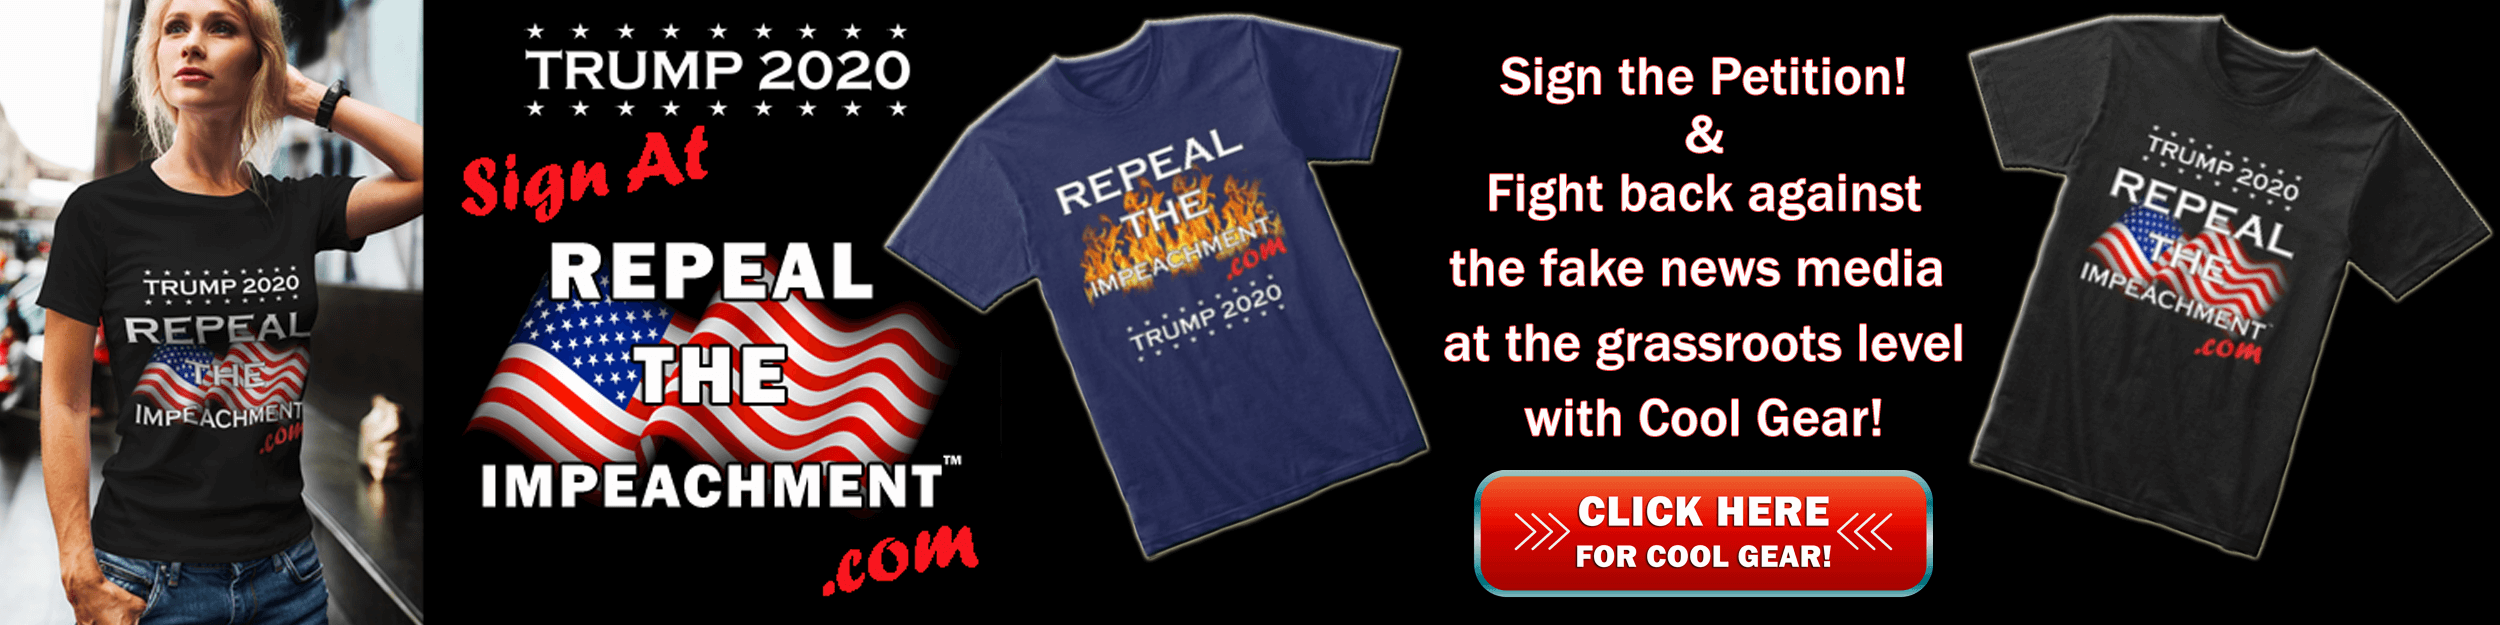 Repeal The Impeachment™